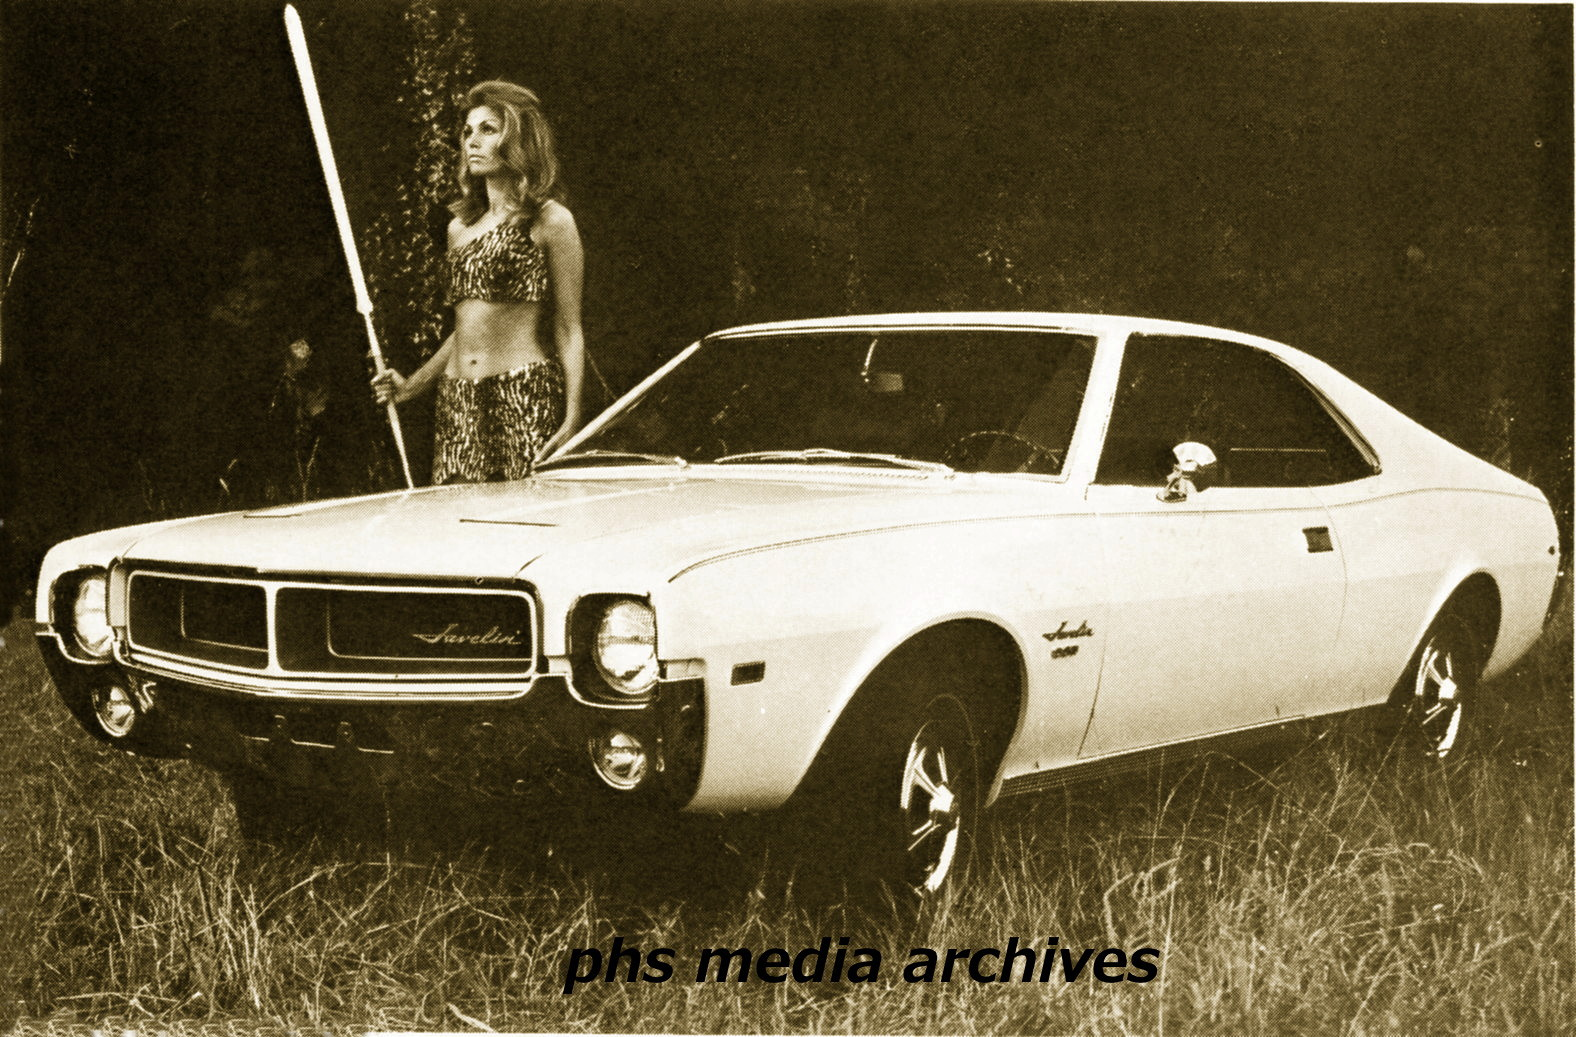 Wiring Diagram 1971 Amc Javelin Sst Trusted Schematics 1969 Amx Retro Flashback Feature Miss Christine Demeter Gremlin